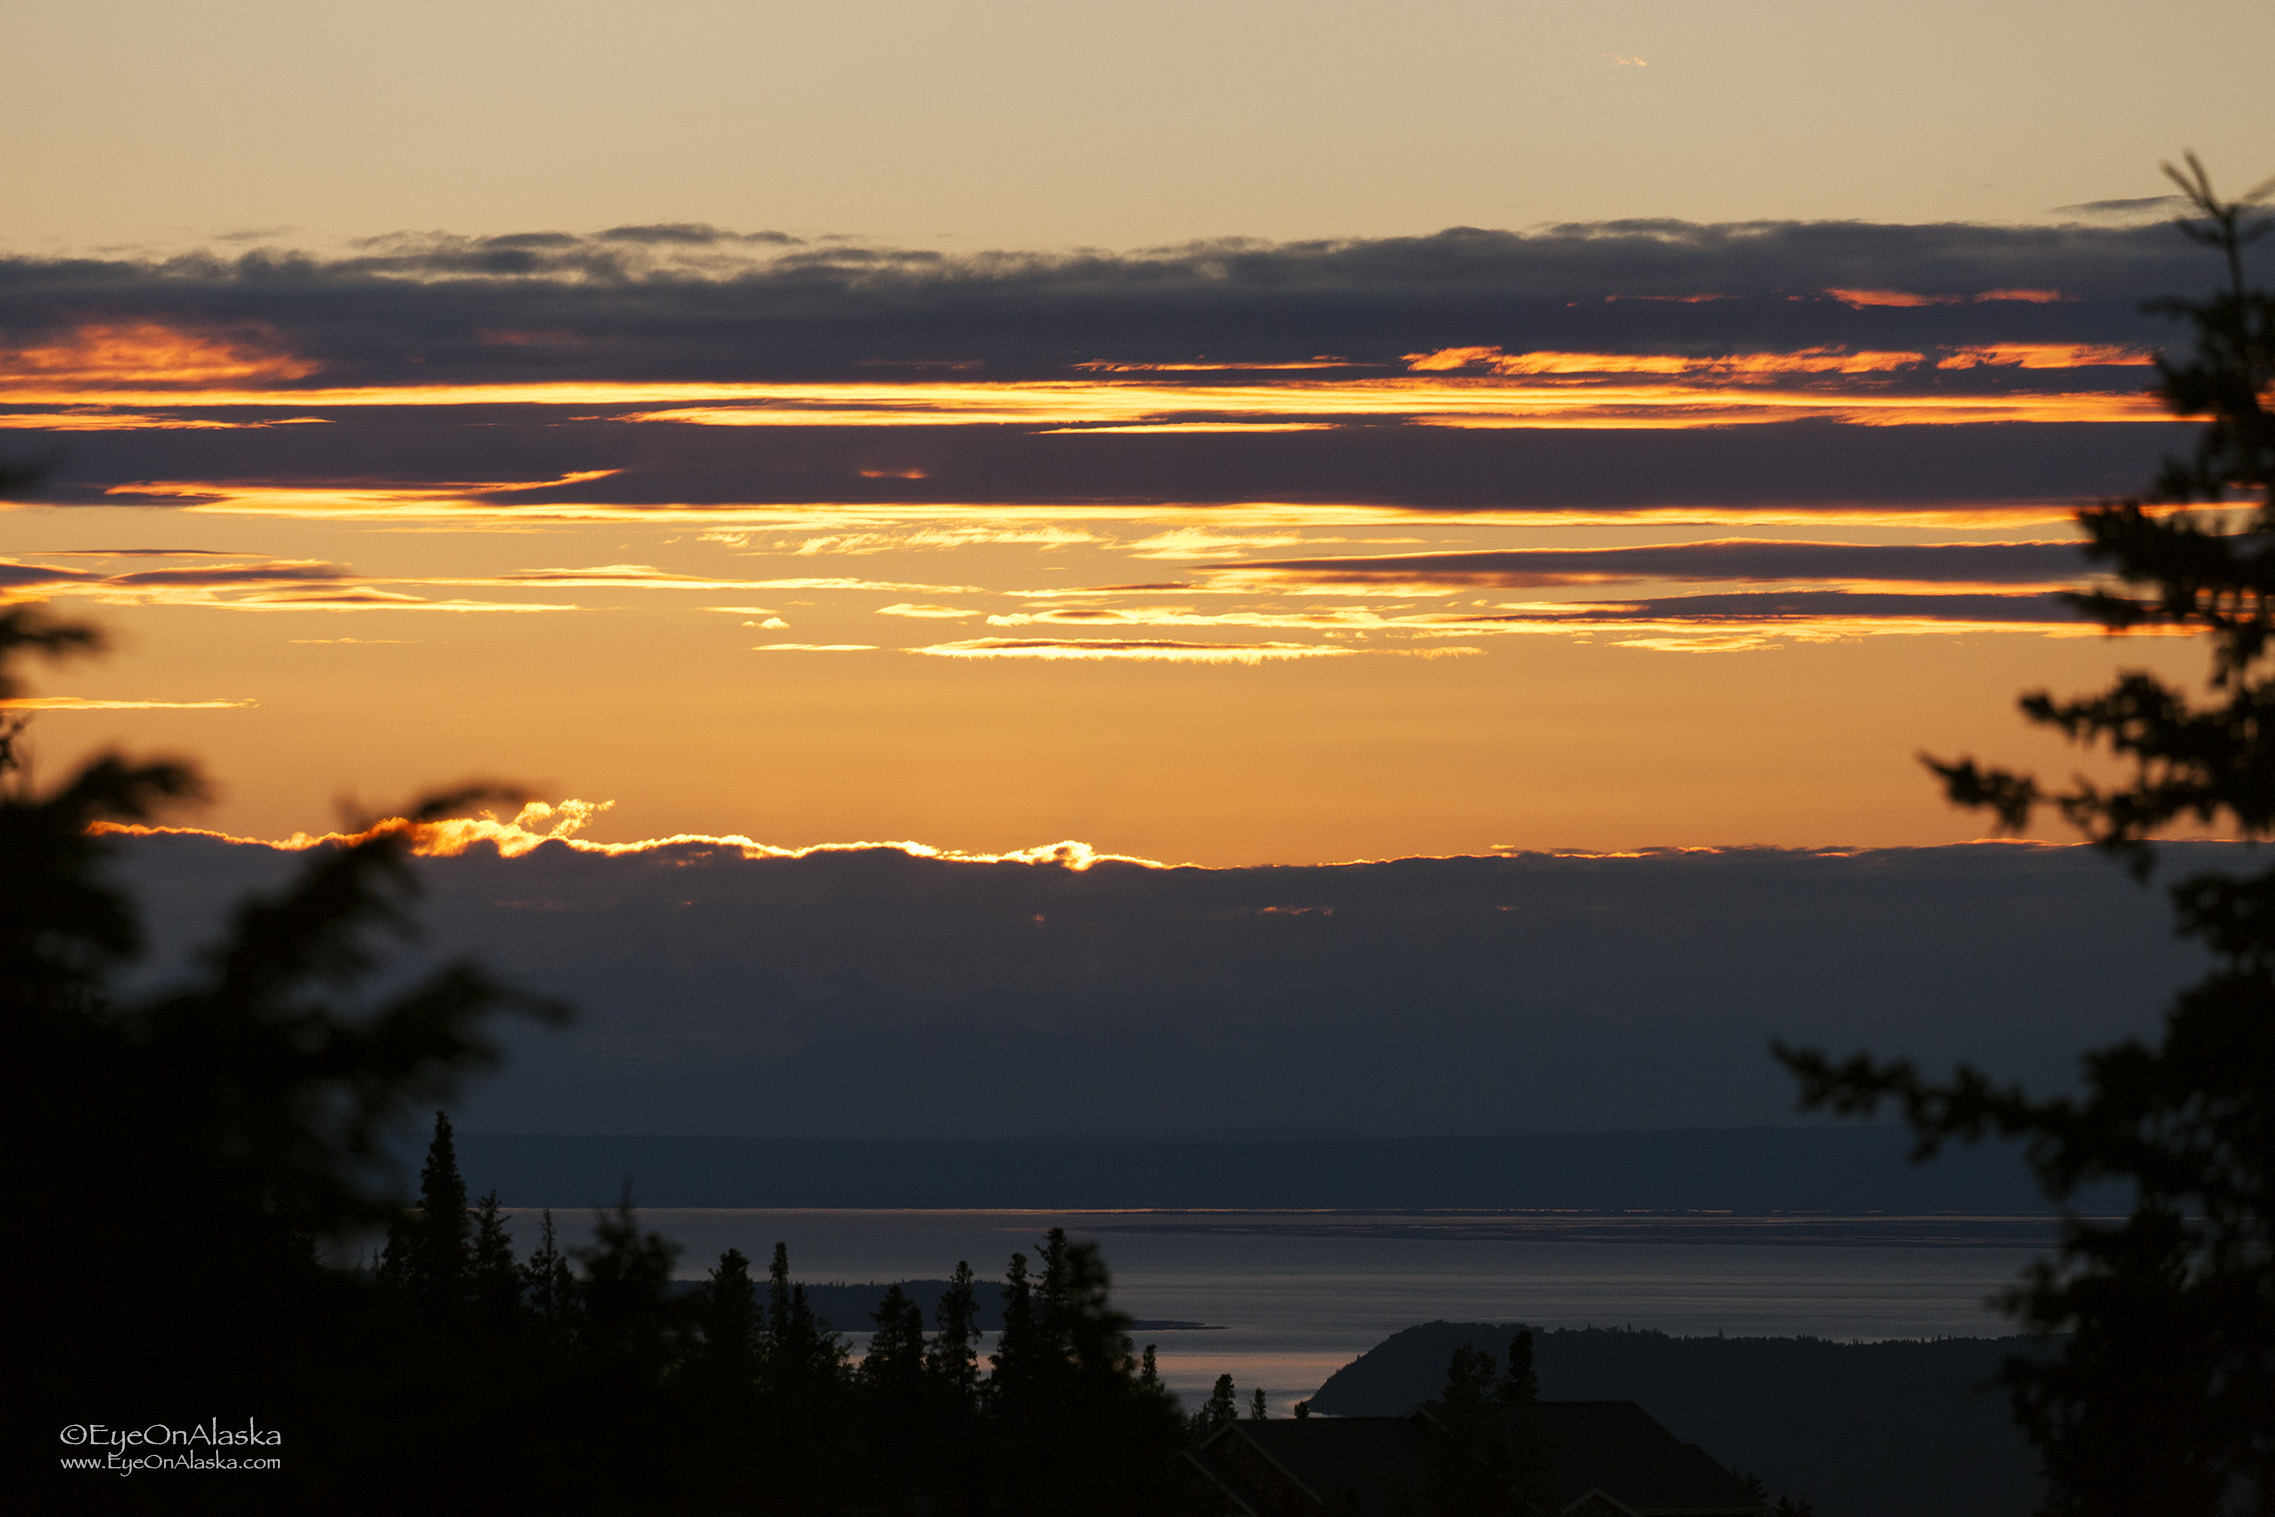 Sunset over Cook Inlet.